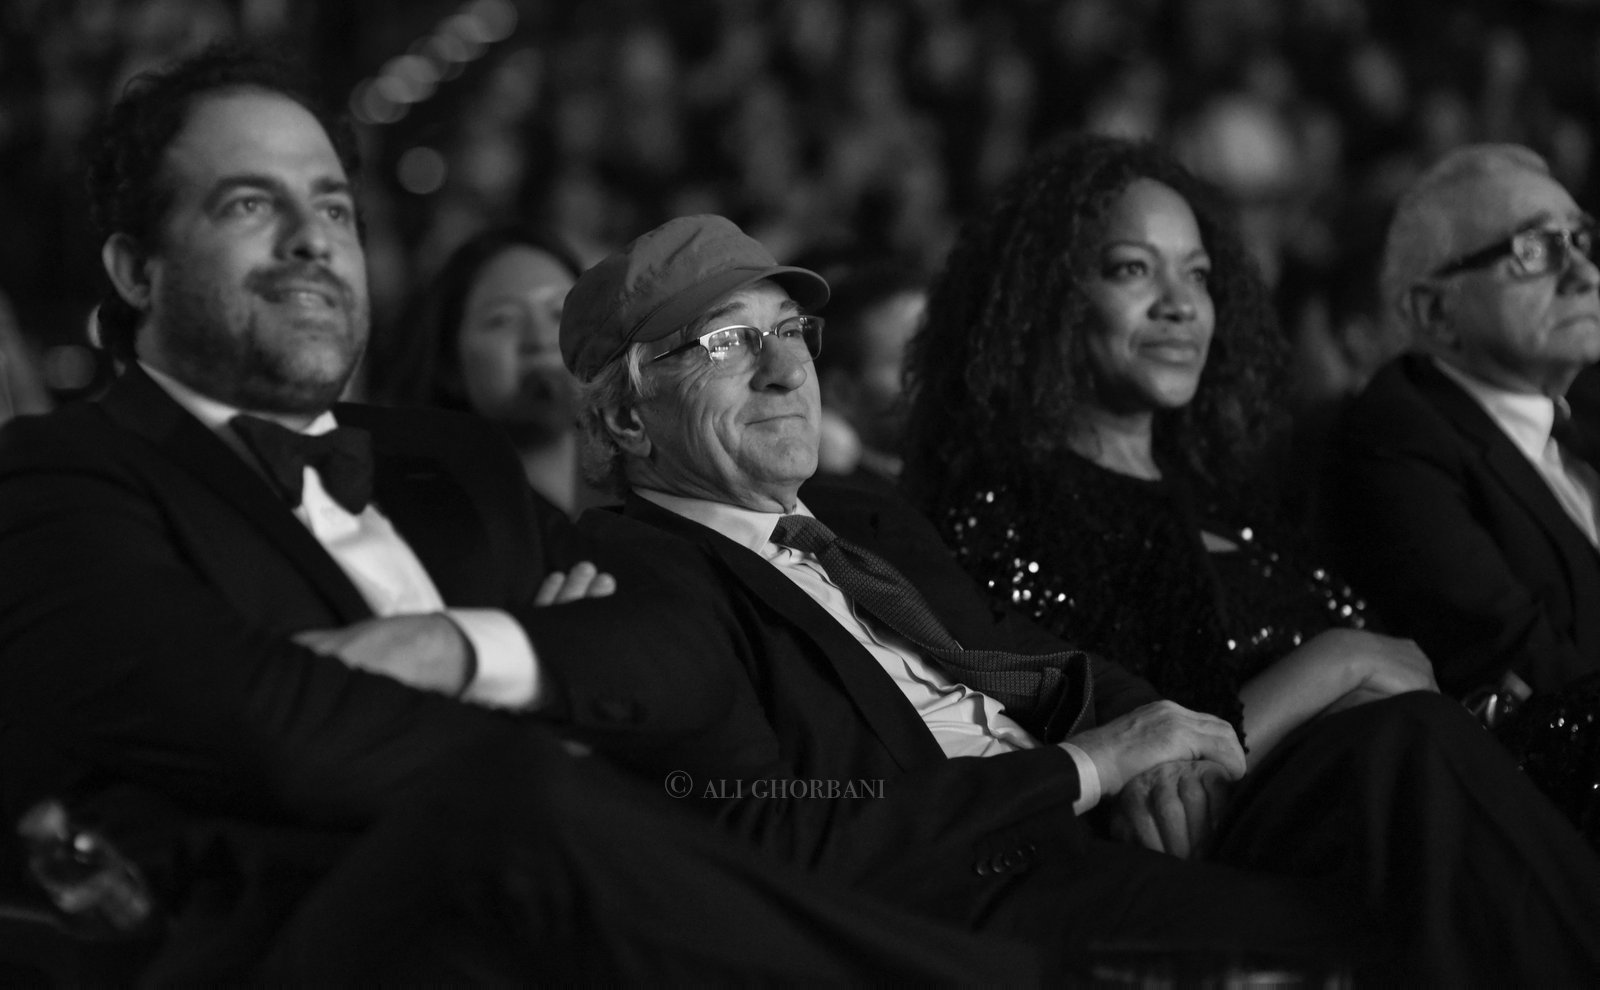 Events Photographer Hong Kong - Robert De Niro